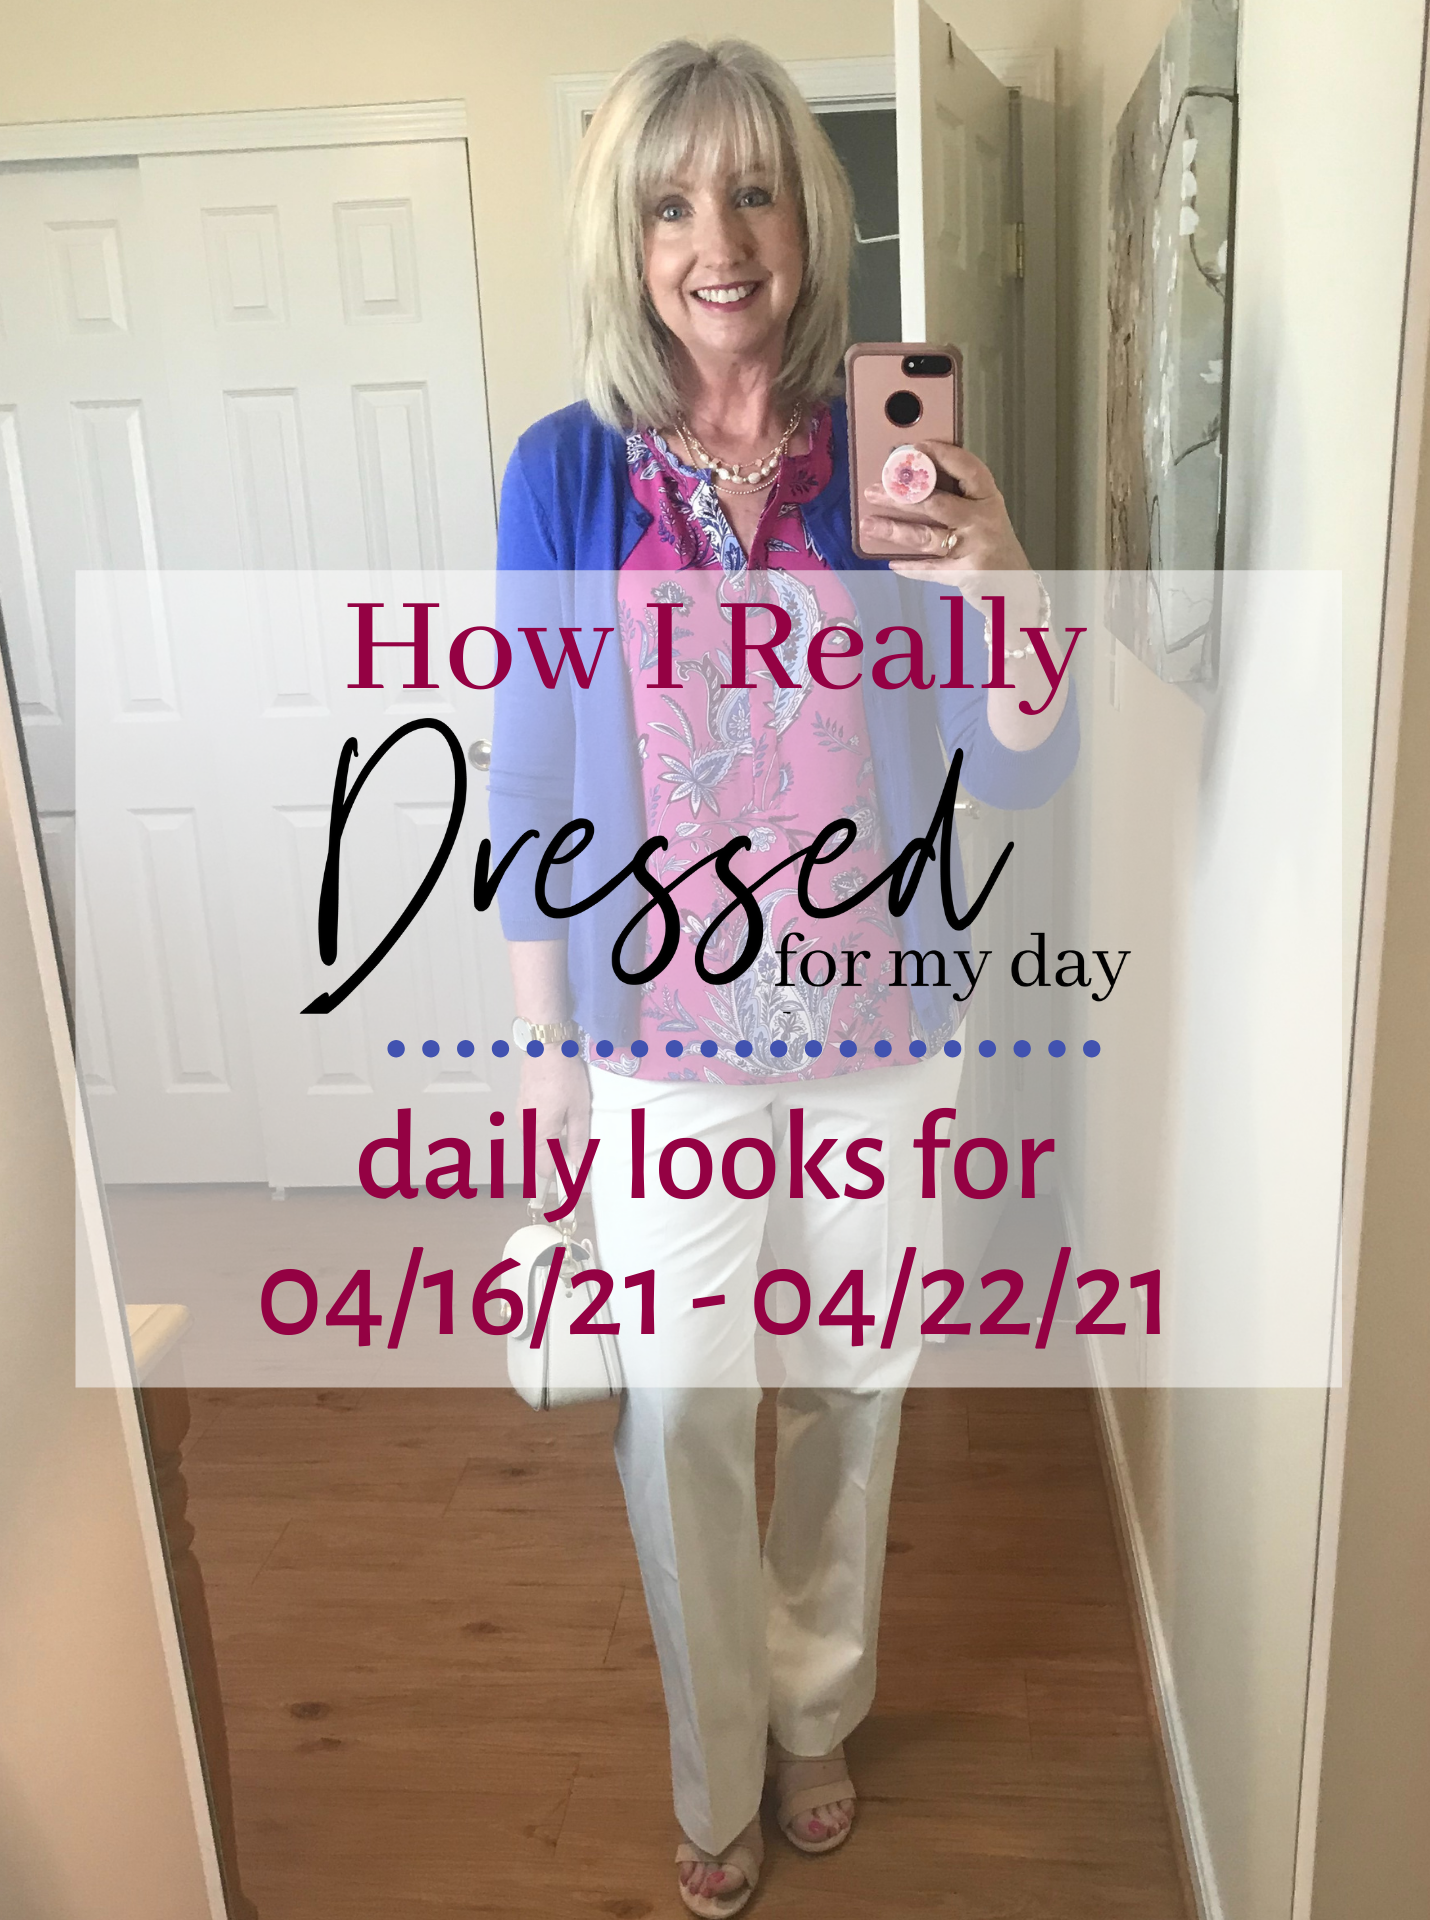 Dressed for My Day 04 16 21 04 22 21